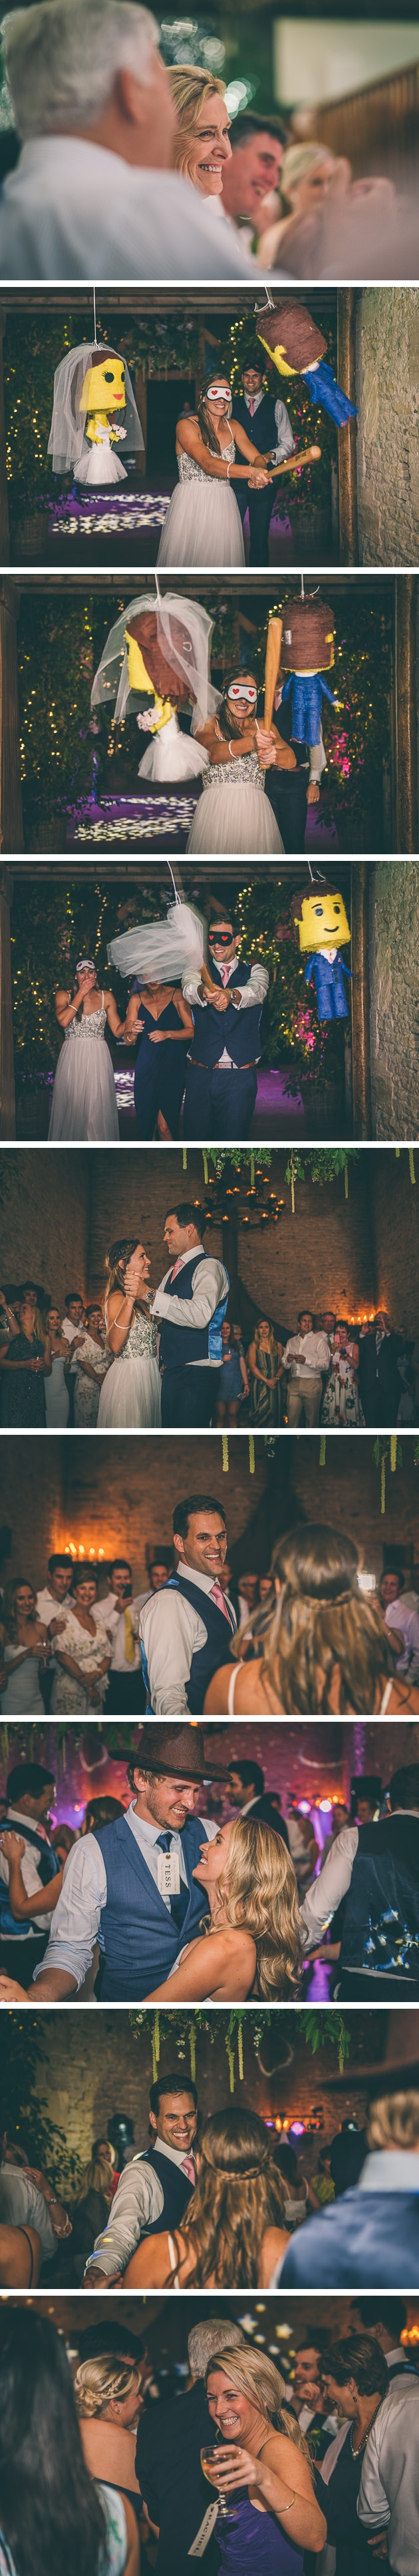 First dance at Stone Barn with the bride and groom